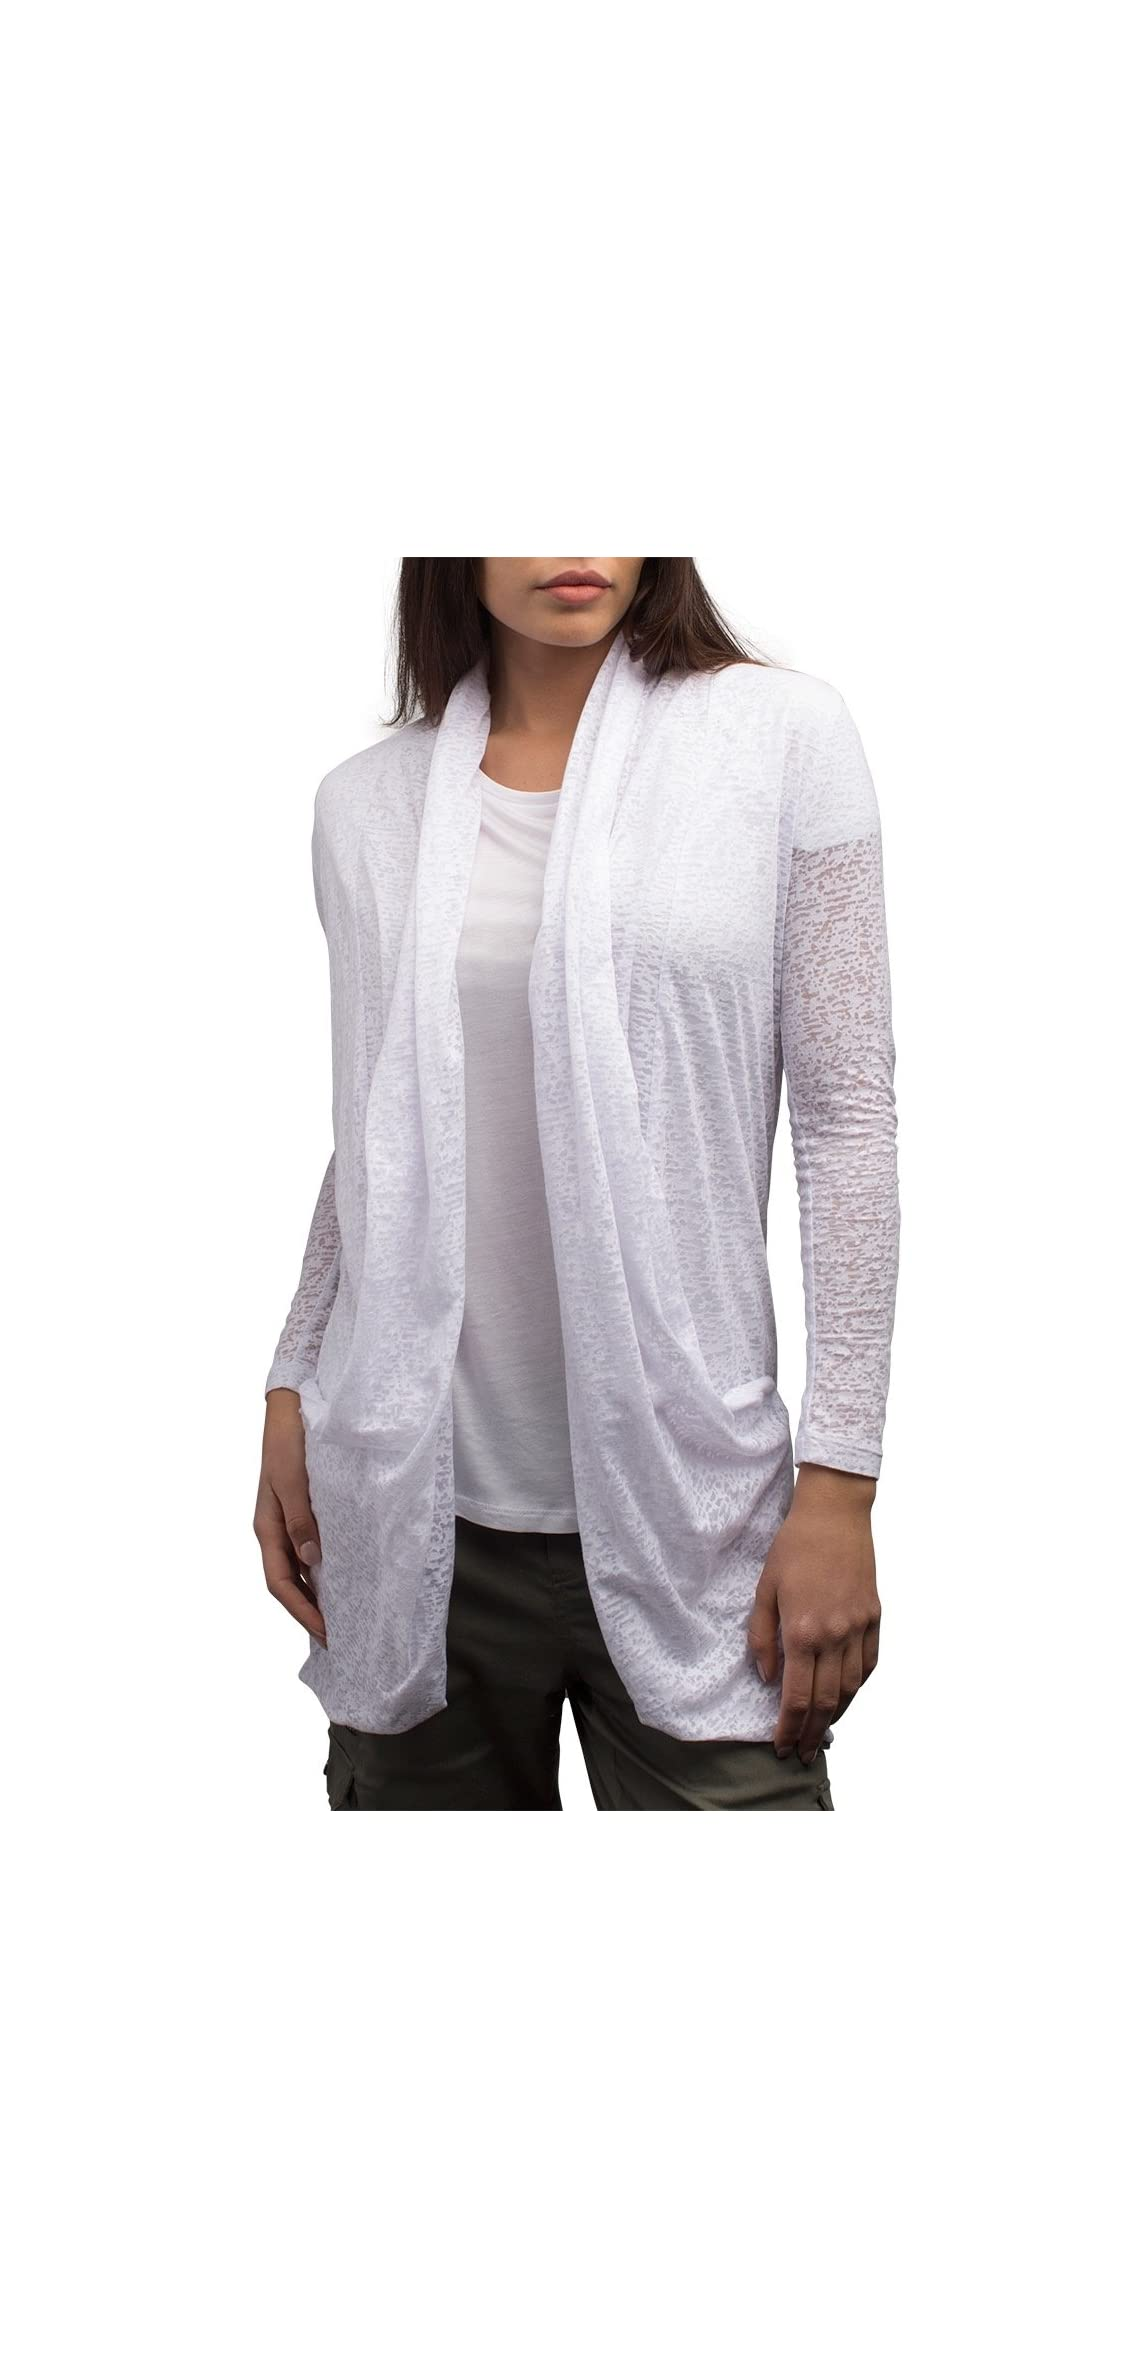 Women Lucille Cardigan - Travel Clothing For Women -